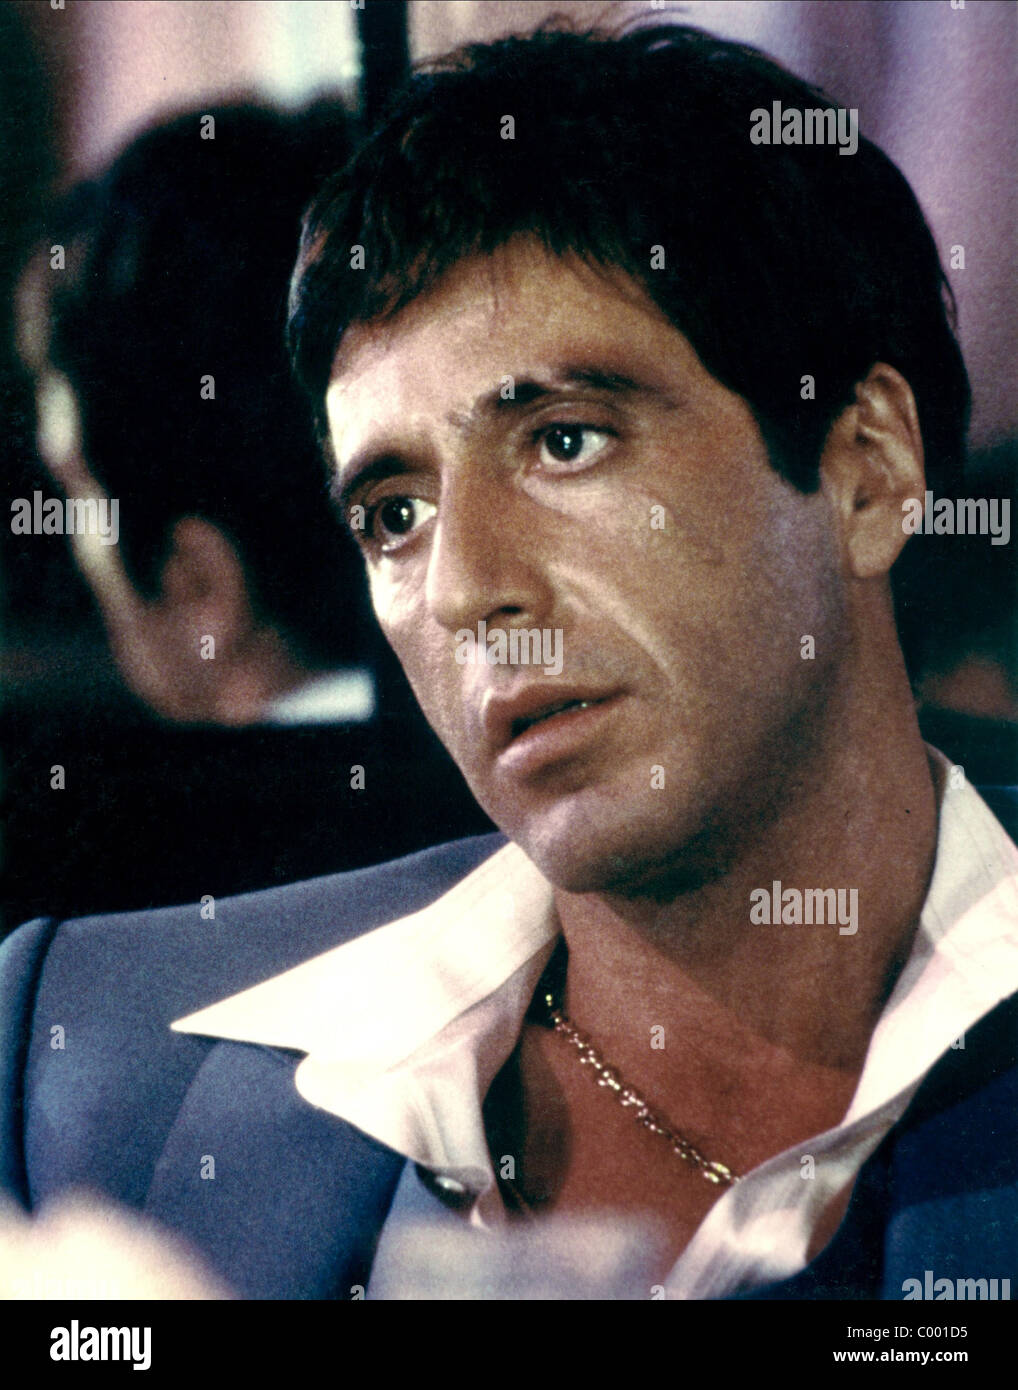 Al pacino scarface 1983 stock photo royalty free image for Occhiali al pacino scarface